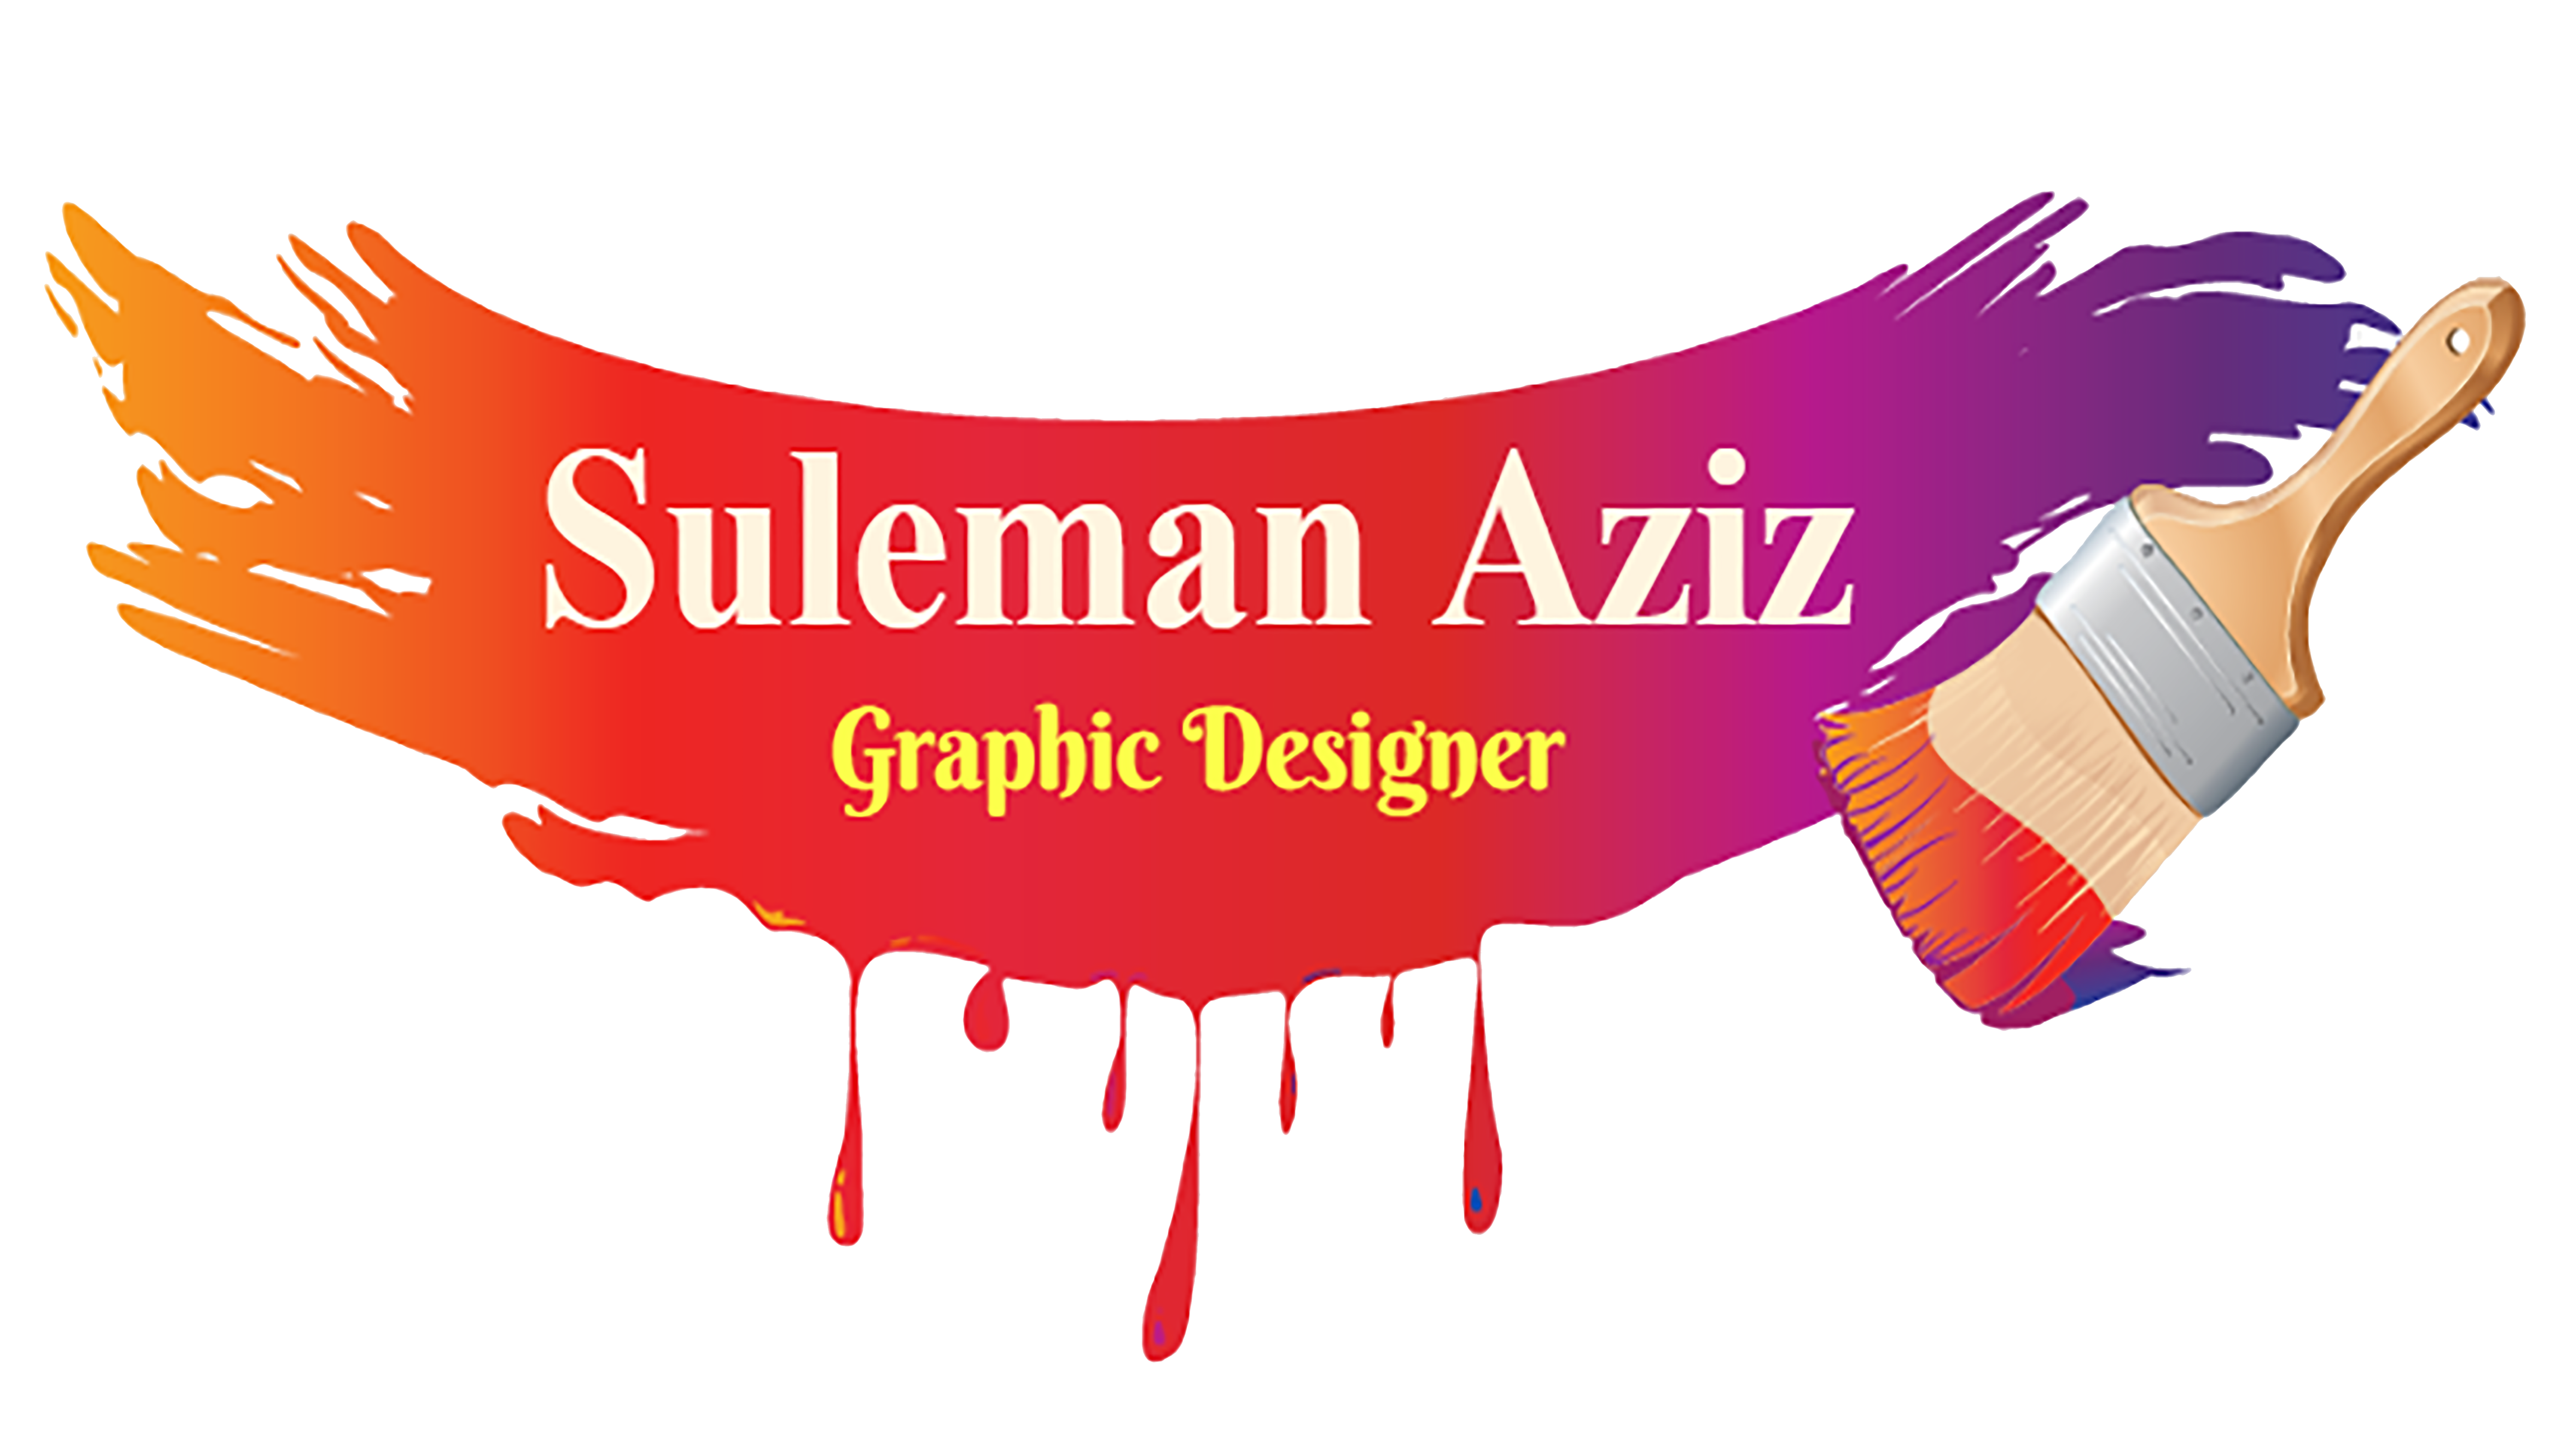 I will design professional business logo in 24 hours